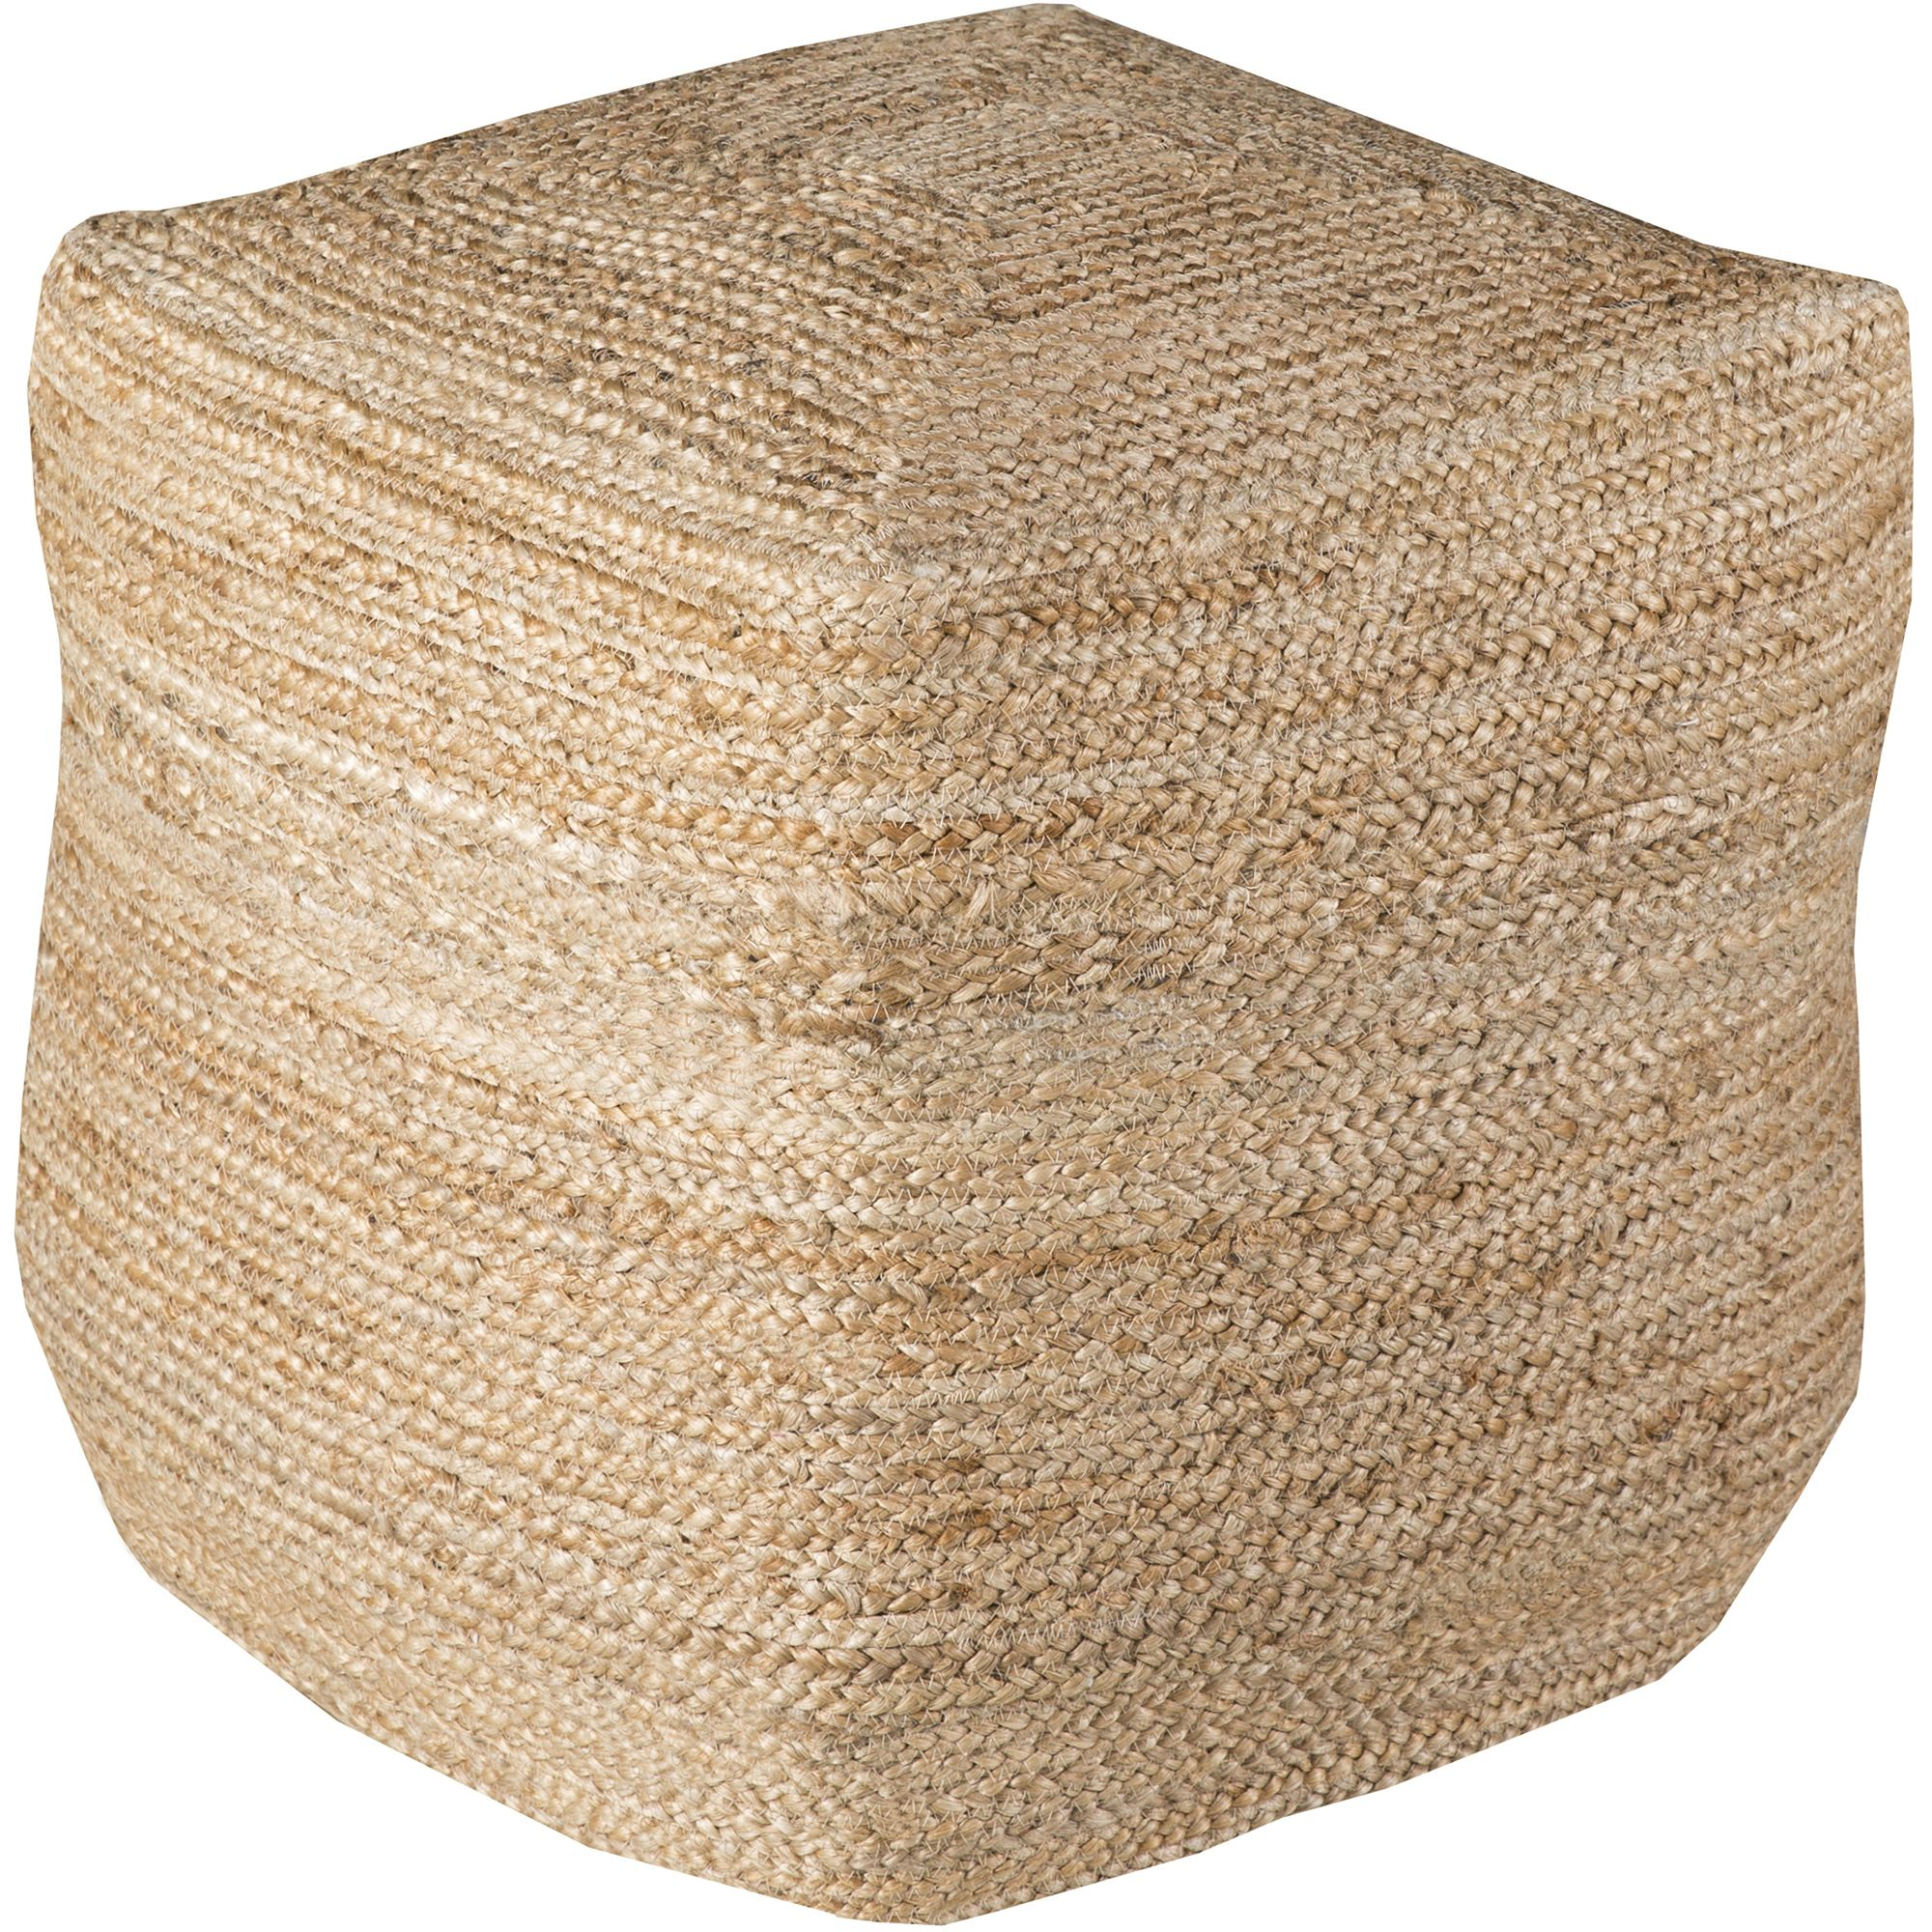 Libby Langdon Callahan Hand Made Natural Fiber Solid Jute Pouf, Beige